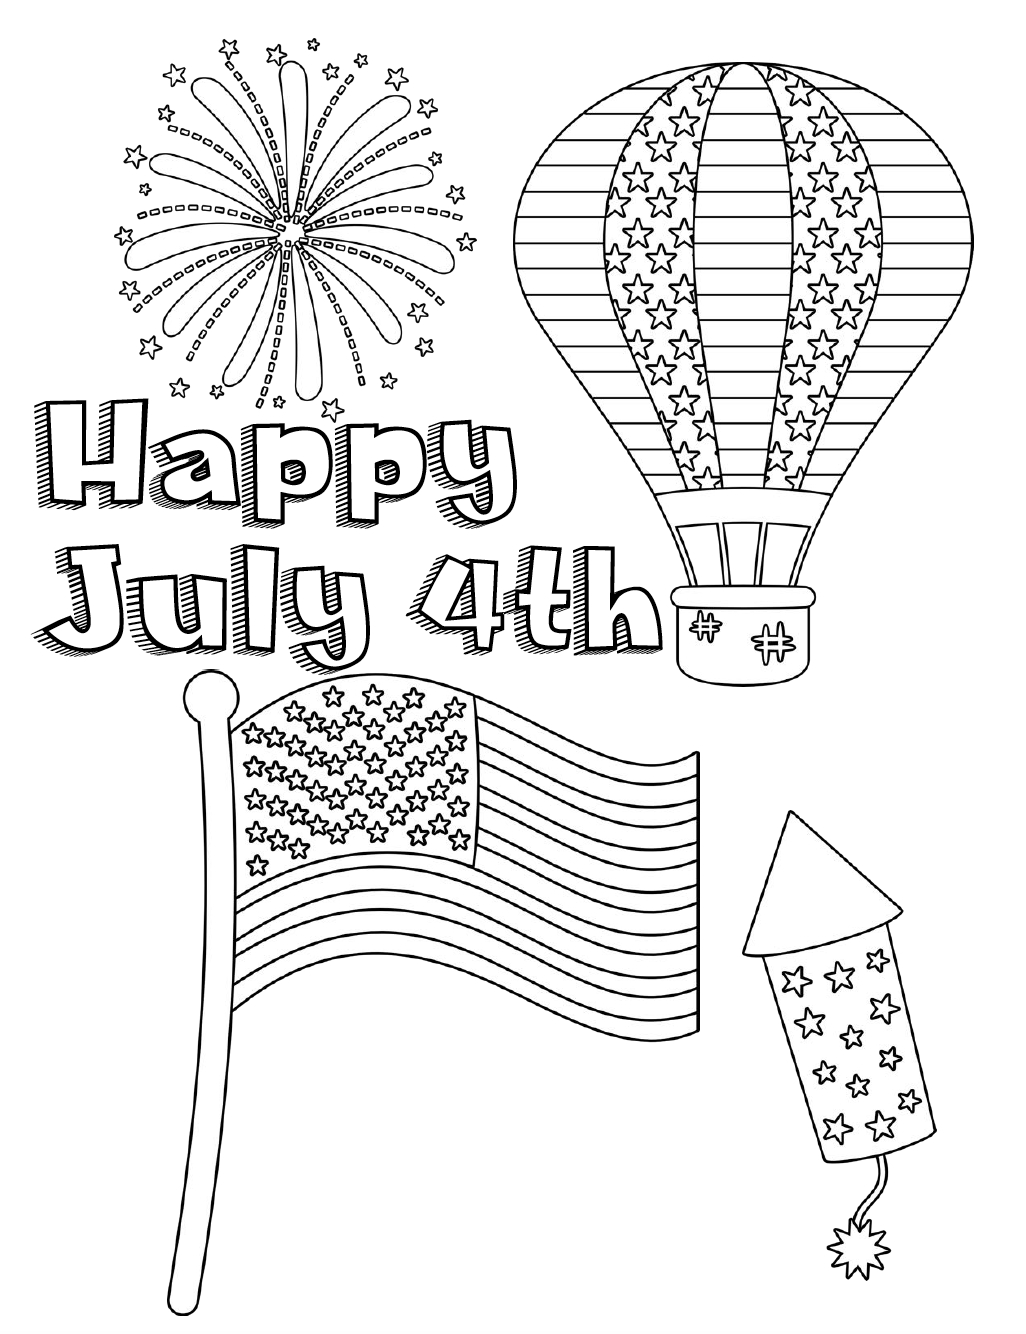 Free Printable Fourth Of July Coloring Pages: 4 Designs - Free Printable 4Th Of July Coloring Pages